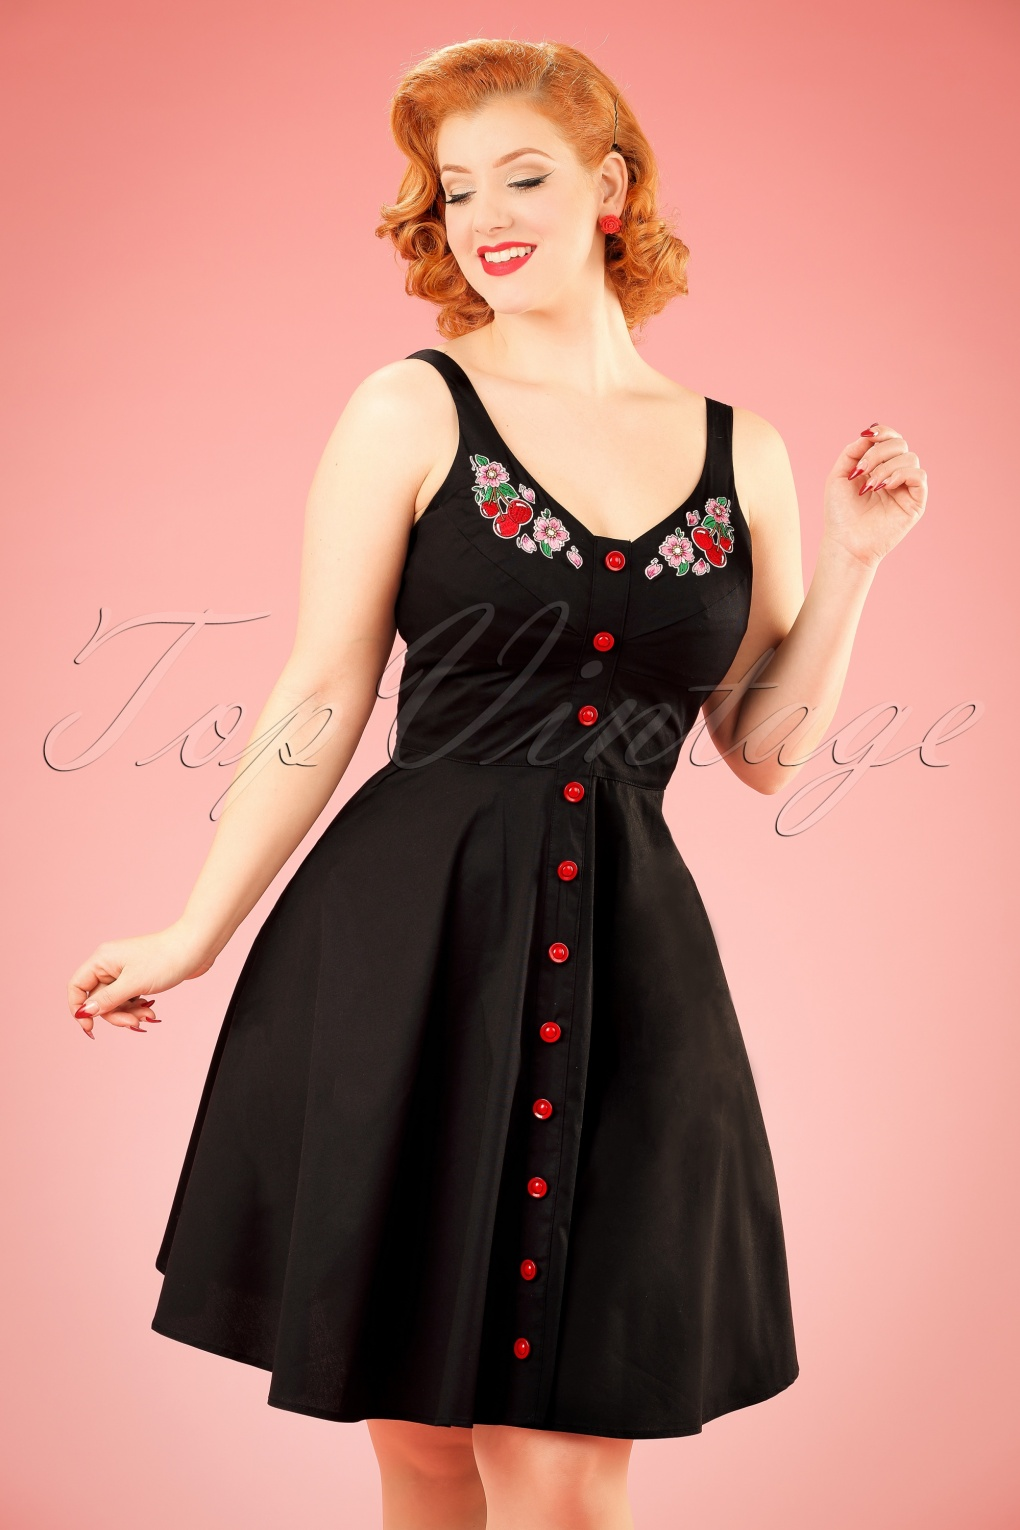 Pin Up Dresses | Pin Up Clothing 50s Lulu Cherry Swing Dress in Black £50.91 AT vintagedancer.com